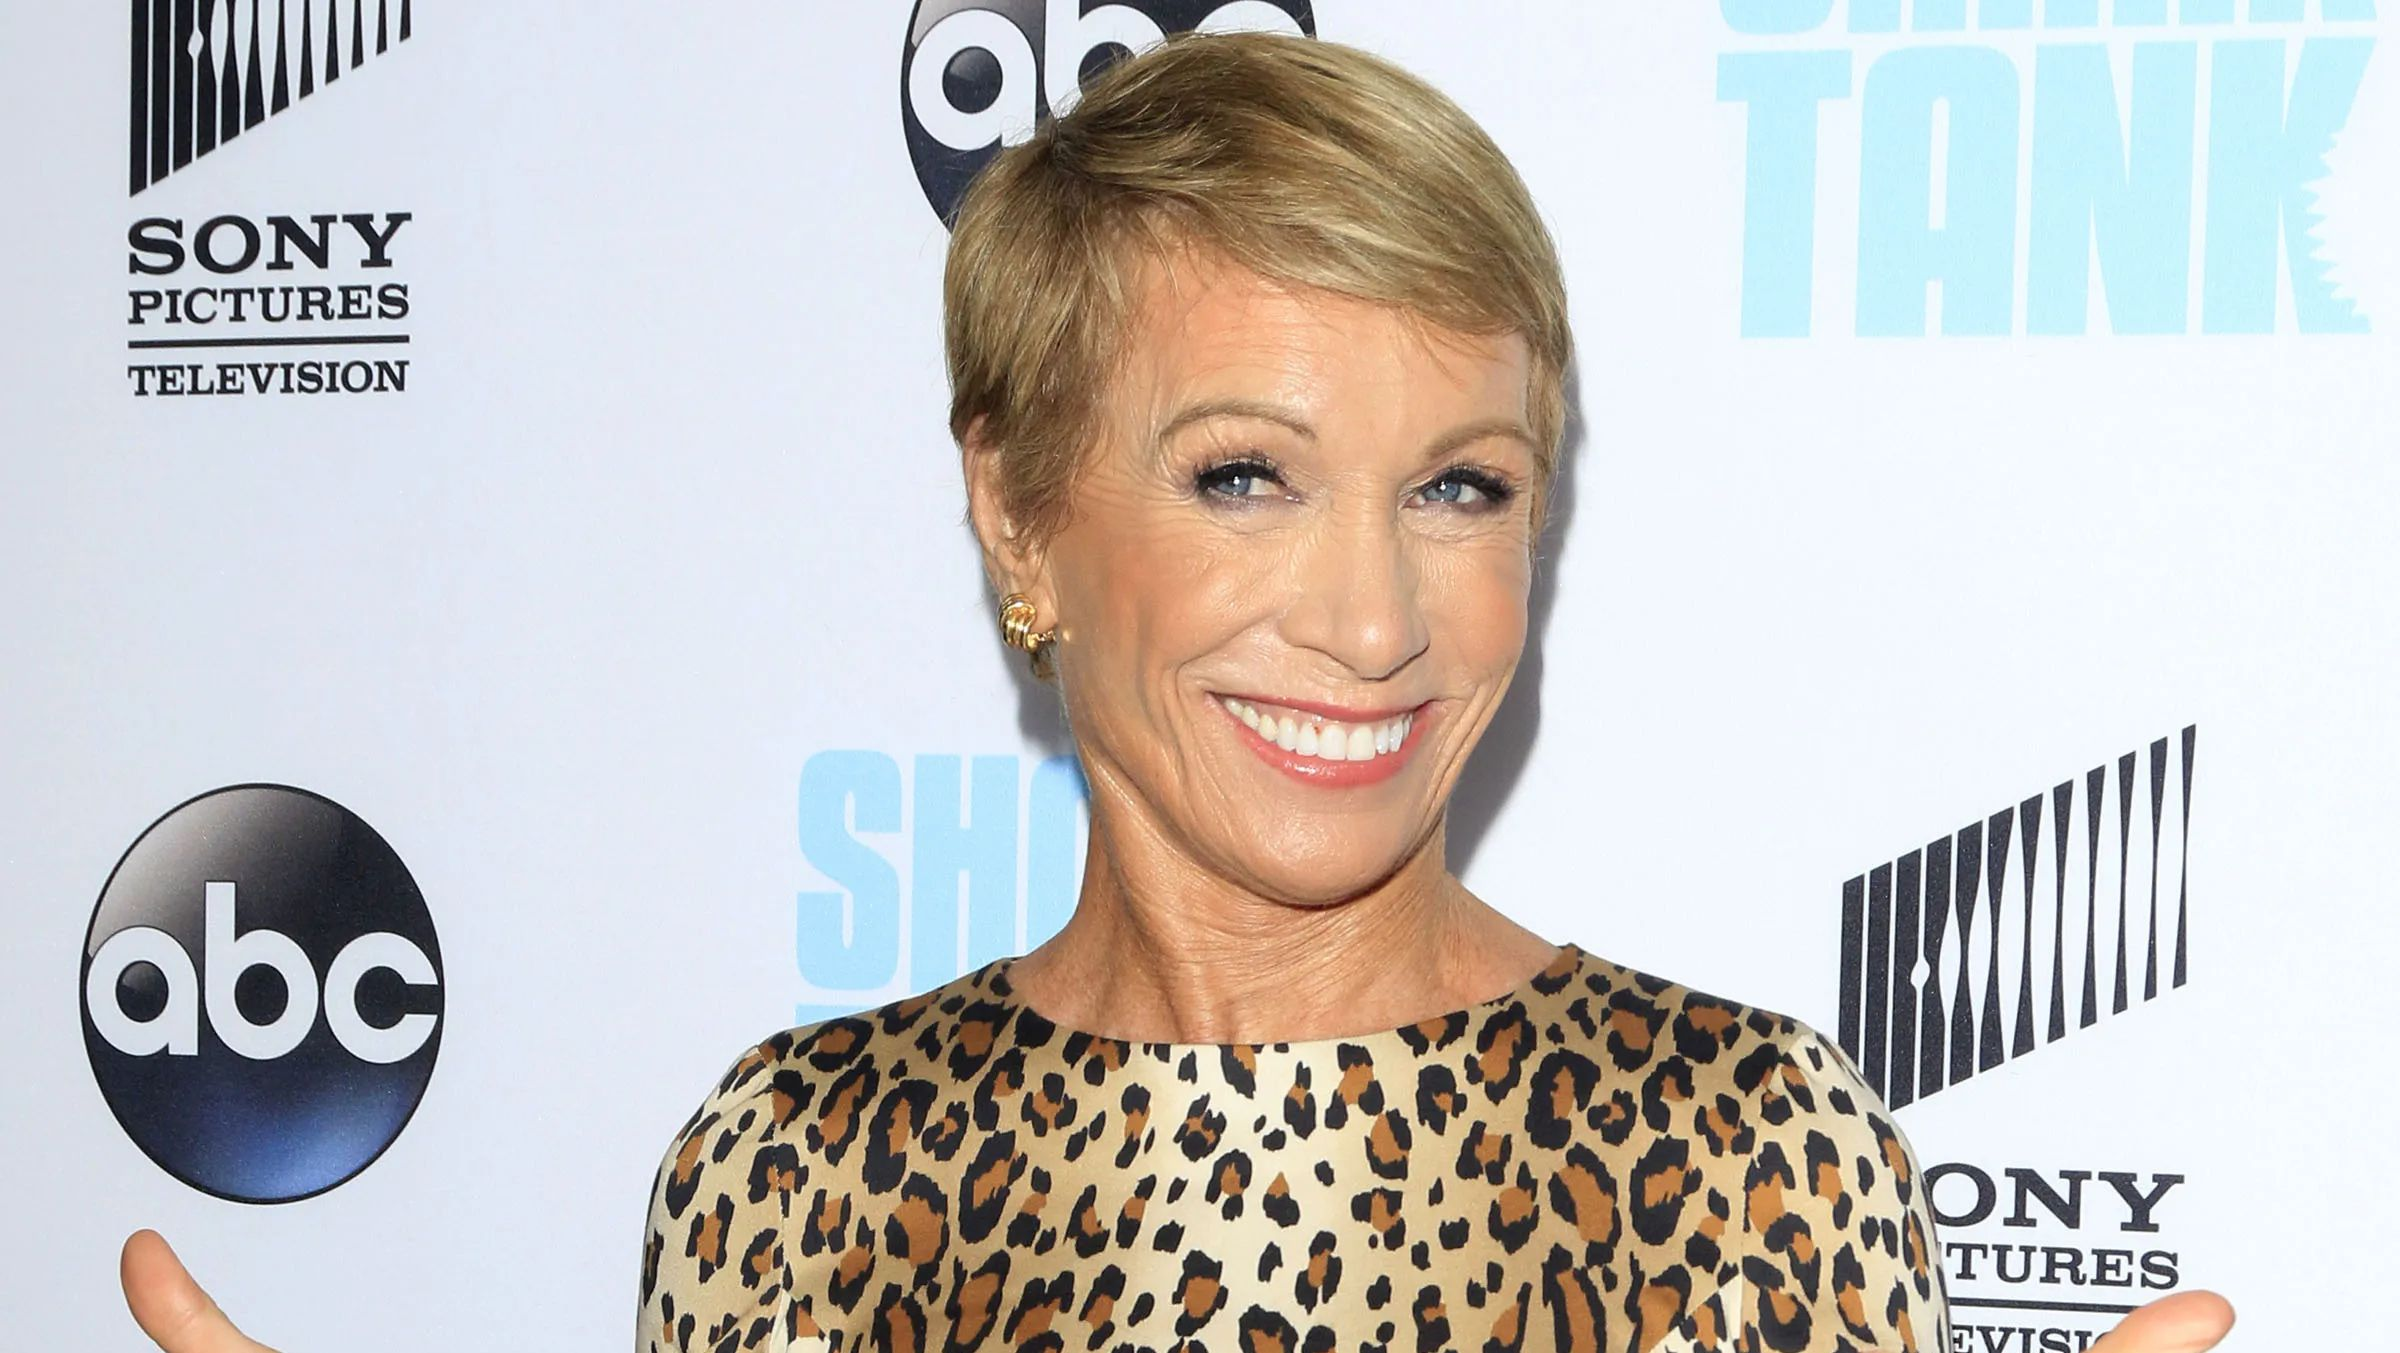 Barbara Corcoran at an event